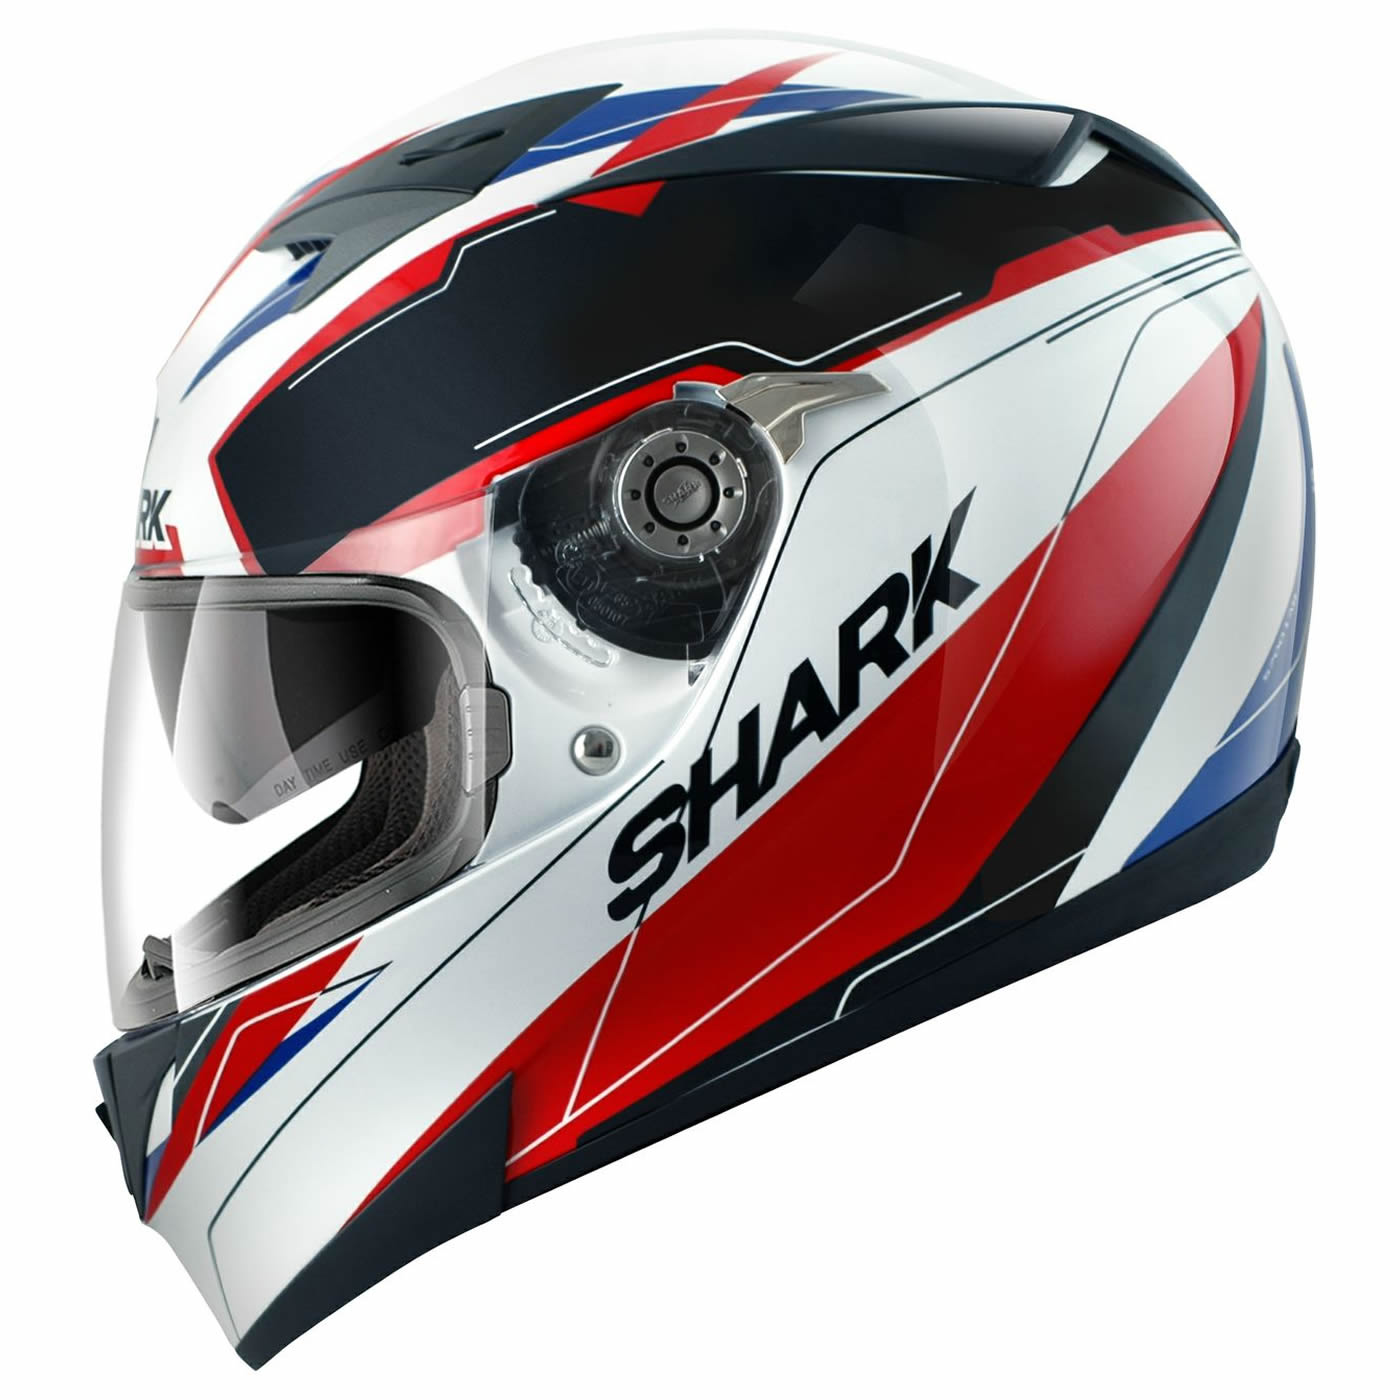 shark s700 s lab scooter sport moto racing casque int gral pare soleil acu or ebay. Black Bedroom Furniture Sets. Home Design Ideas